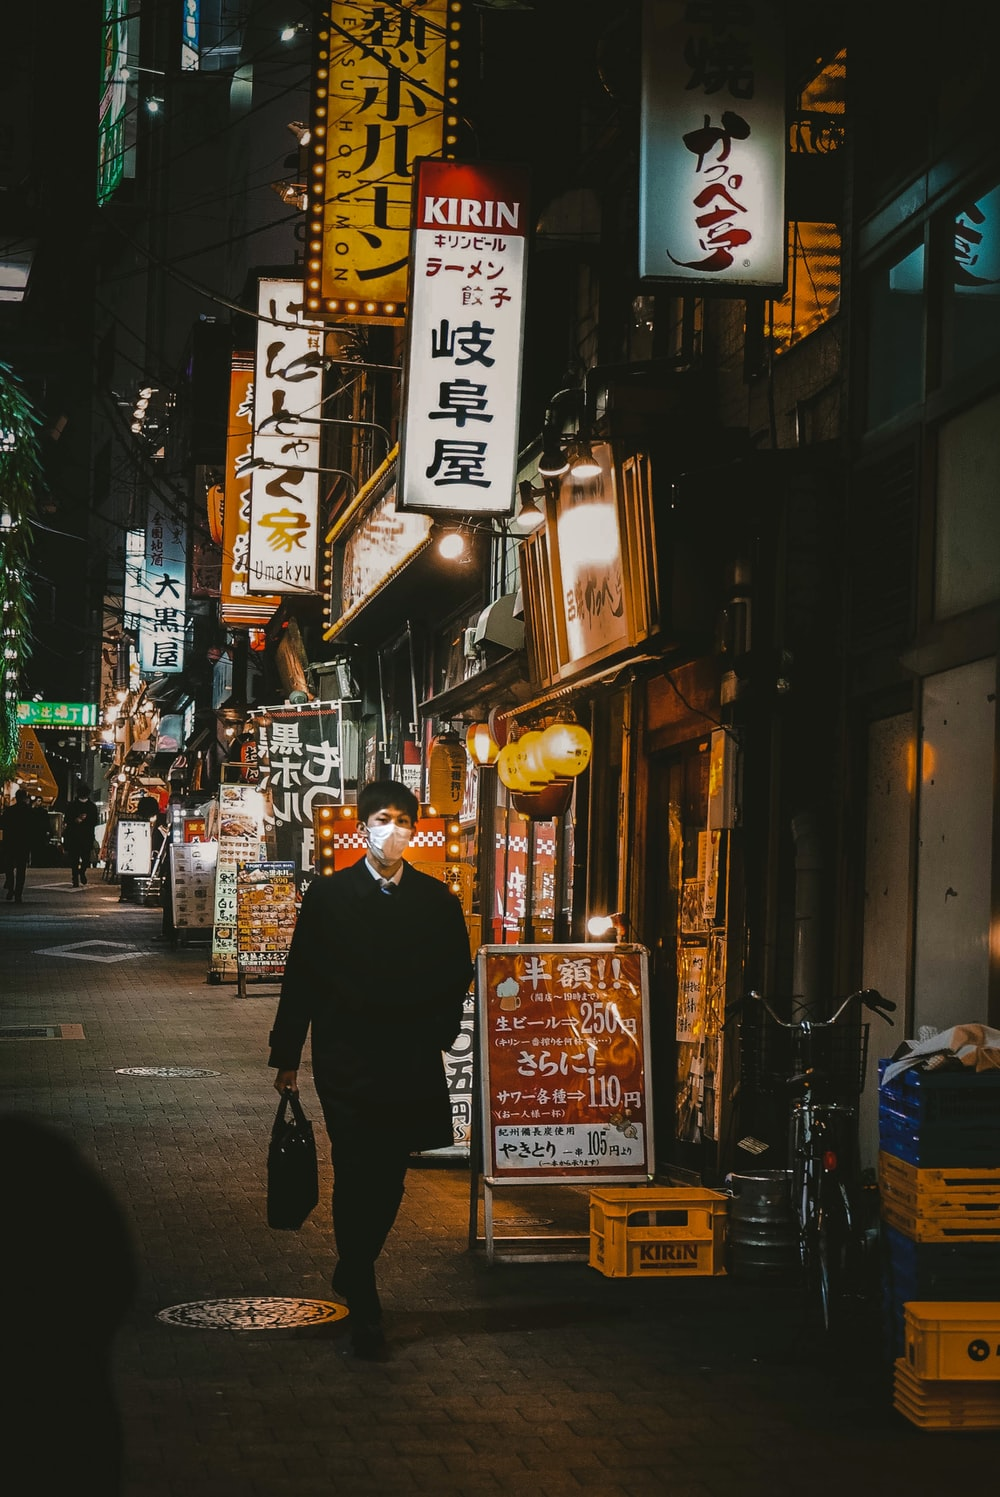 500 Street Photography Pictures Hq Download Free Images On Unsplash